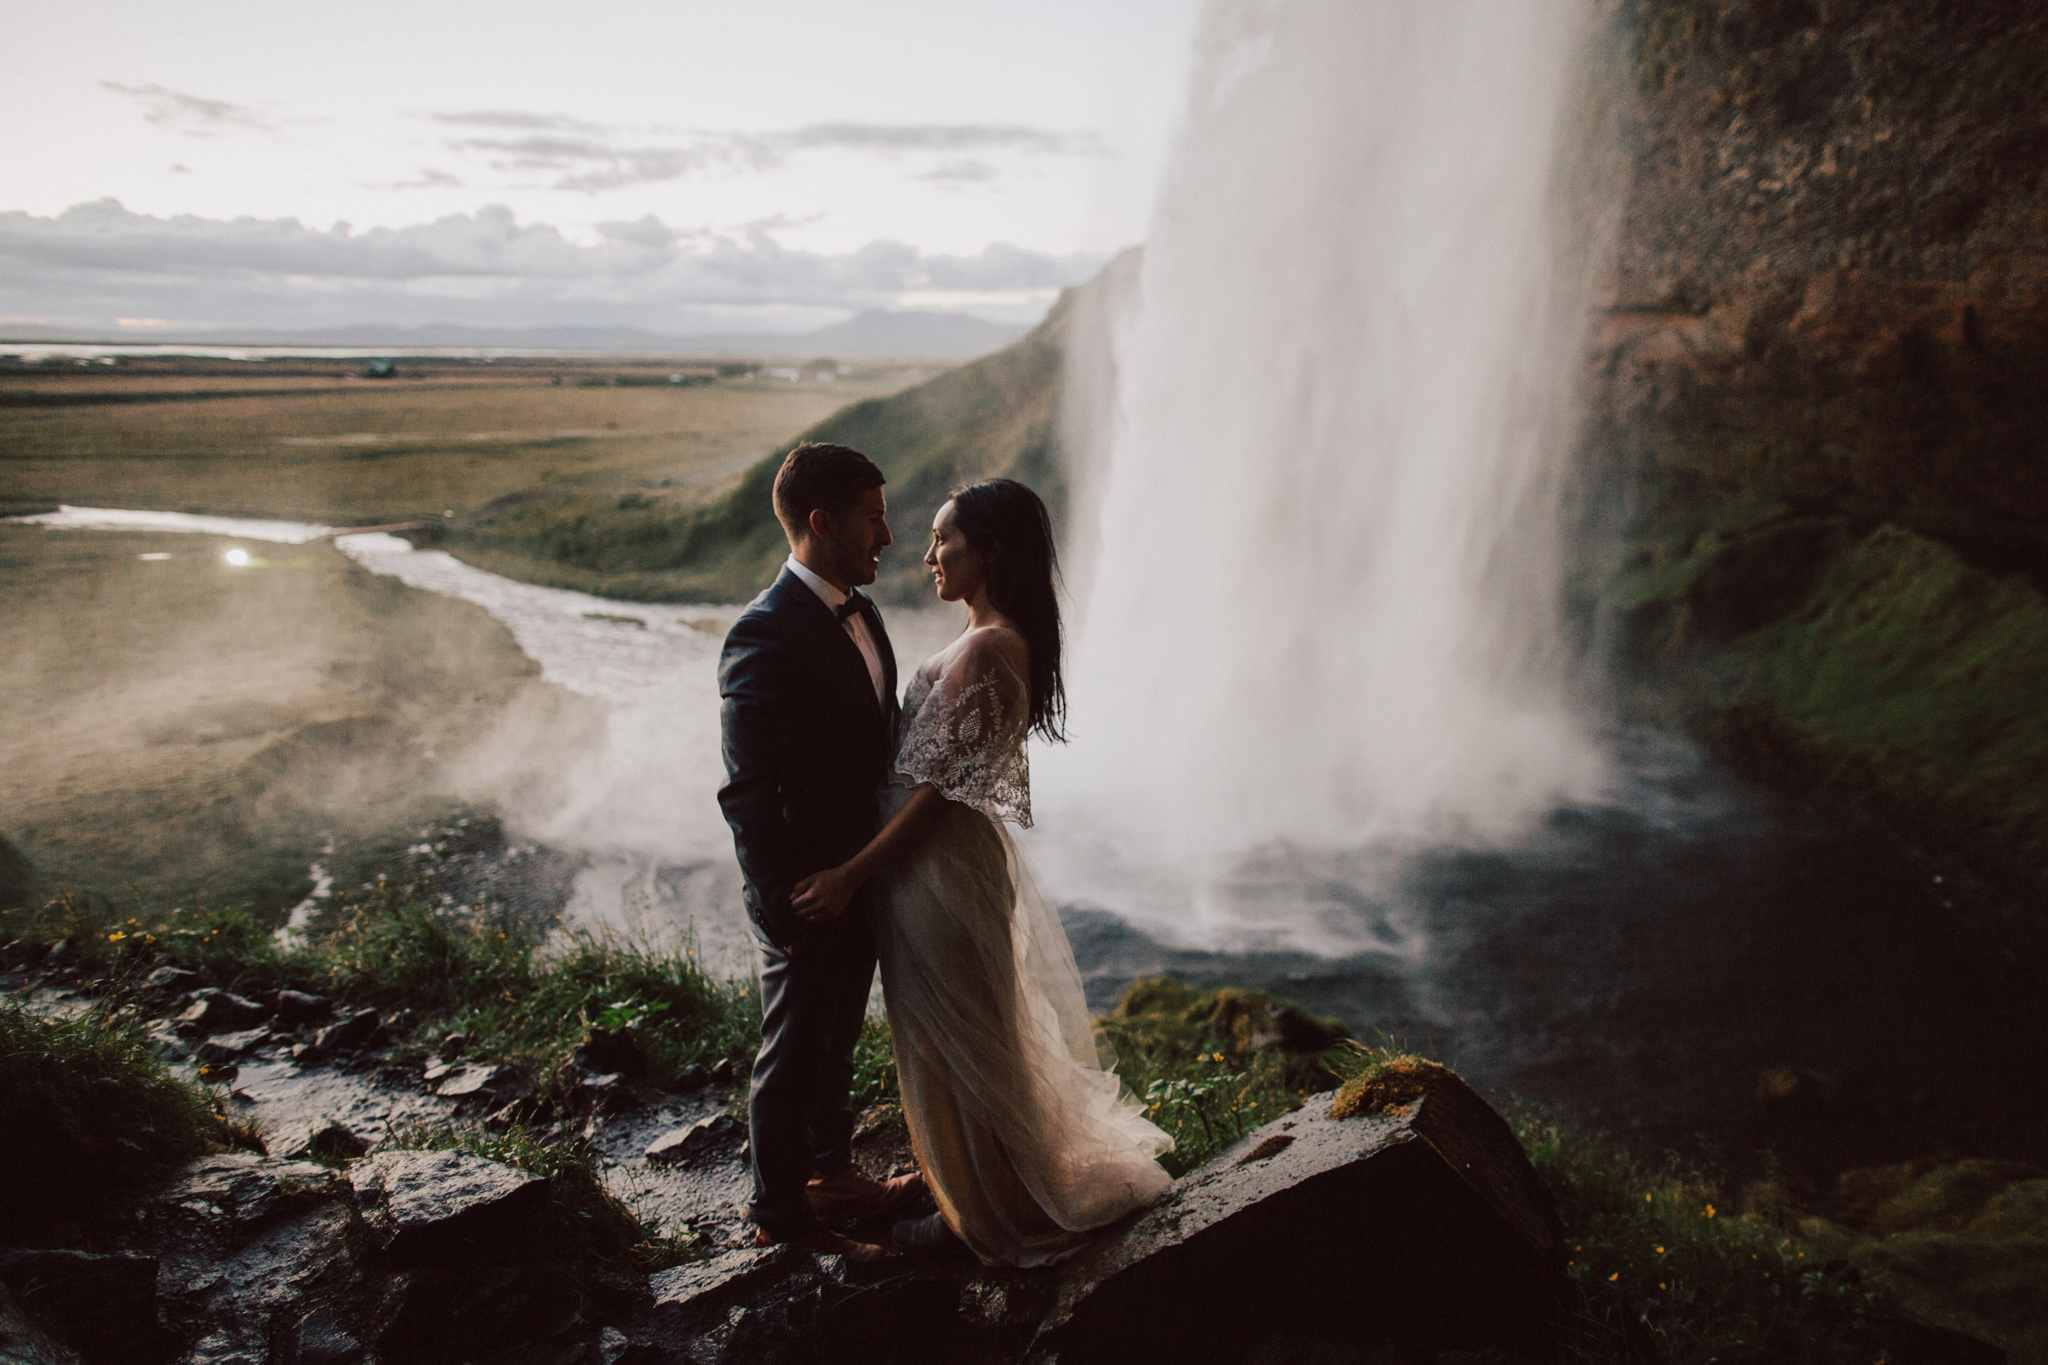 Daring Wanderer Photography - Toronto Wedding Photographer - Toronto Editorial Photographer - Iceland Wedding Photographer